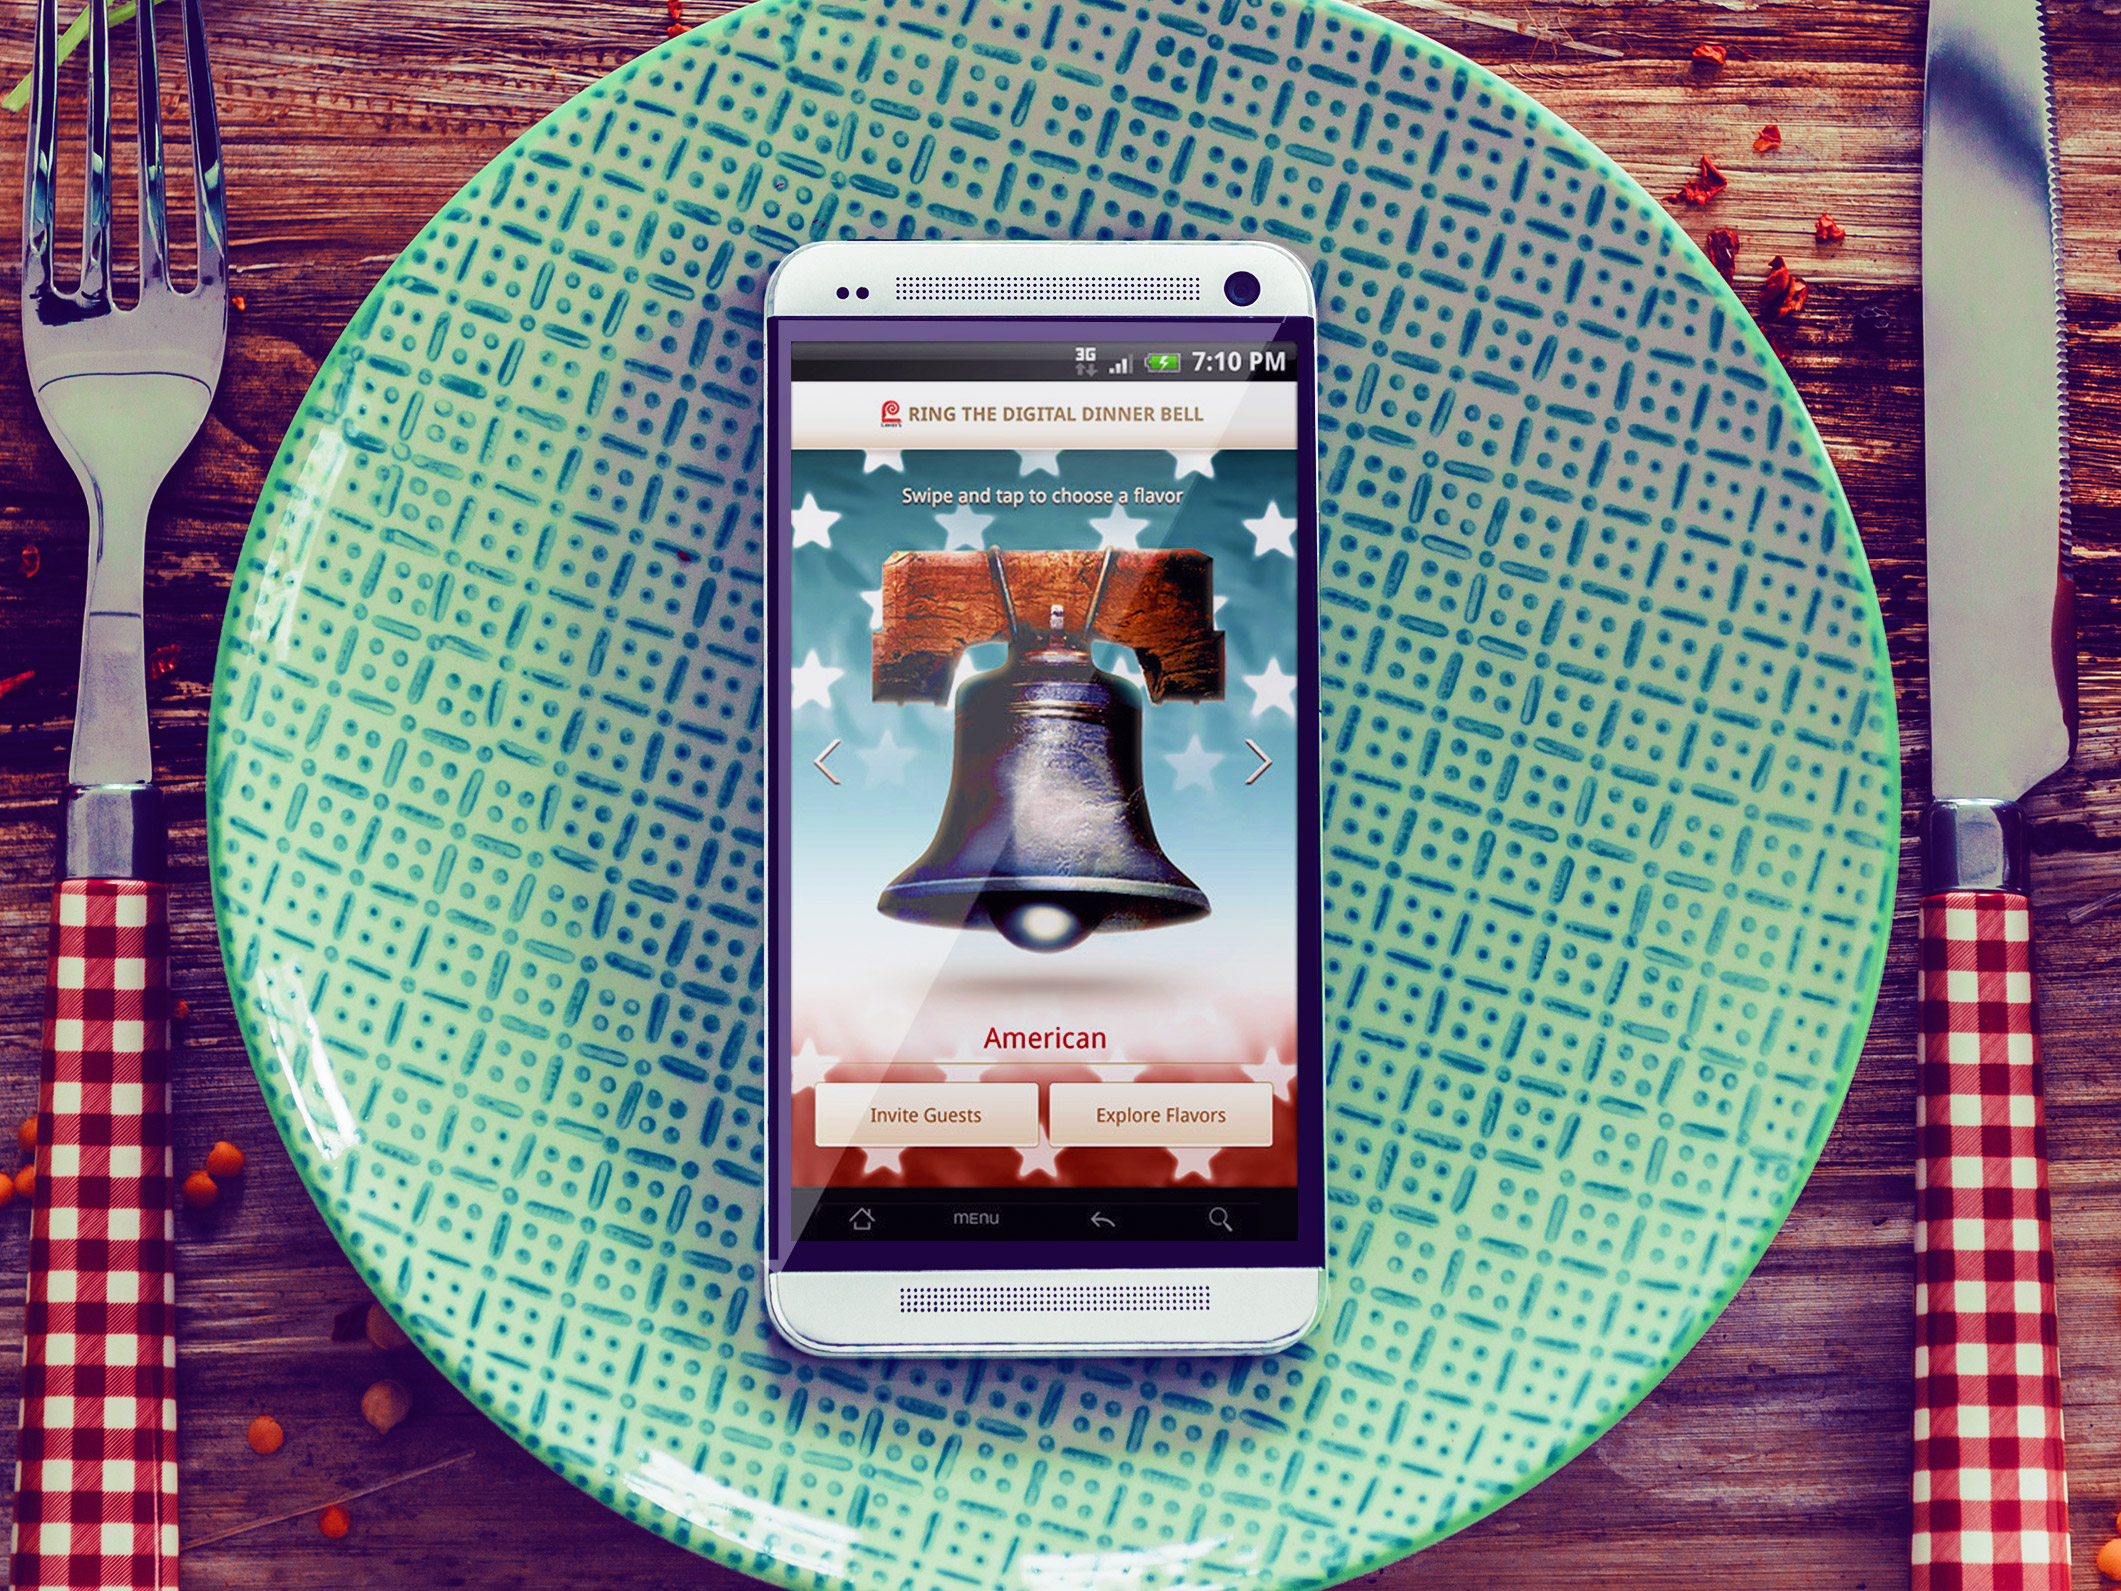 Lawry's Digital Dinner Bell